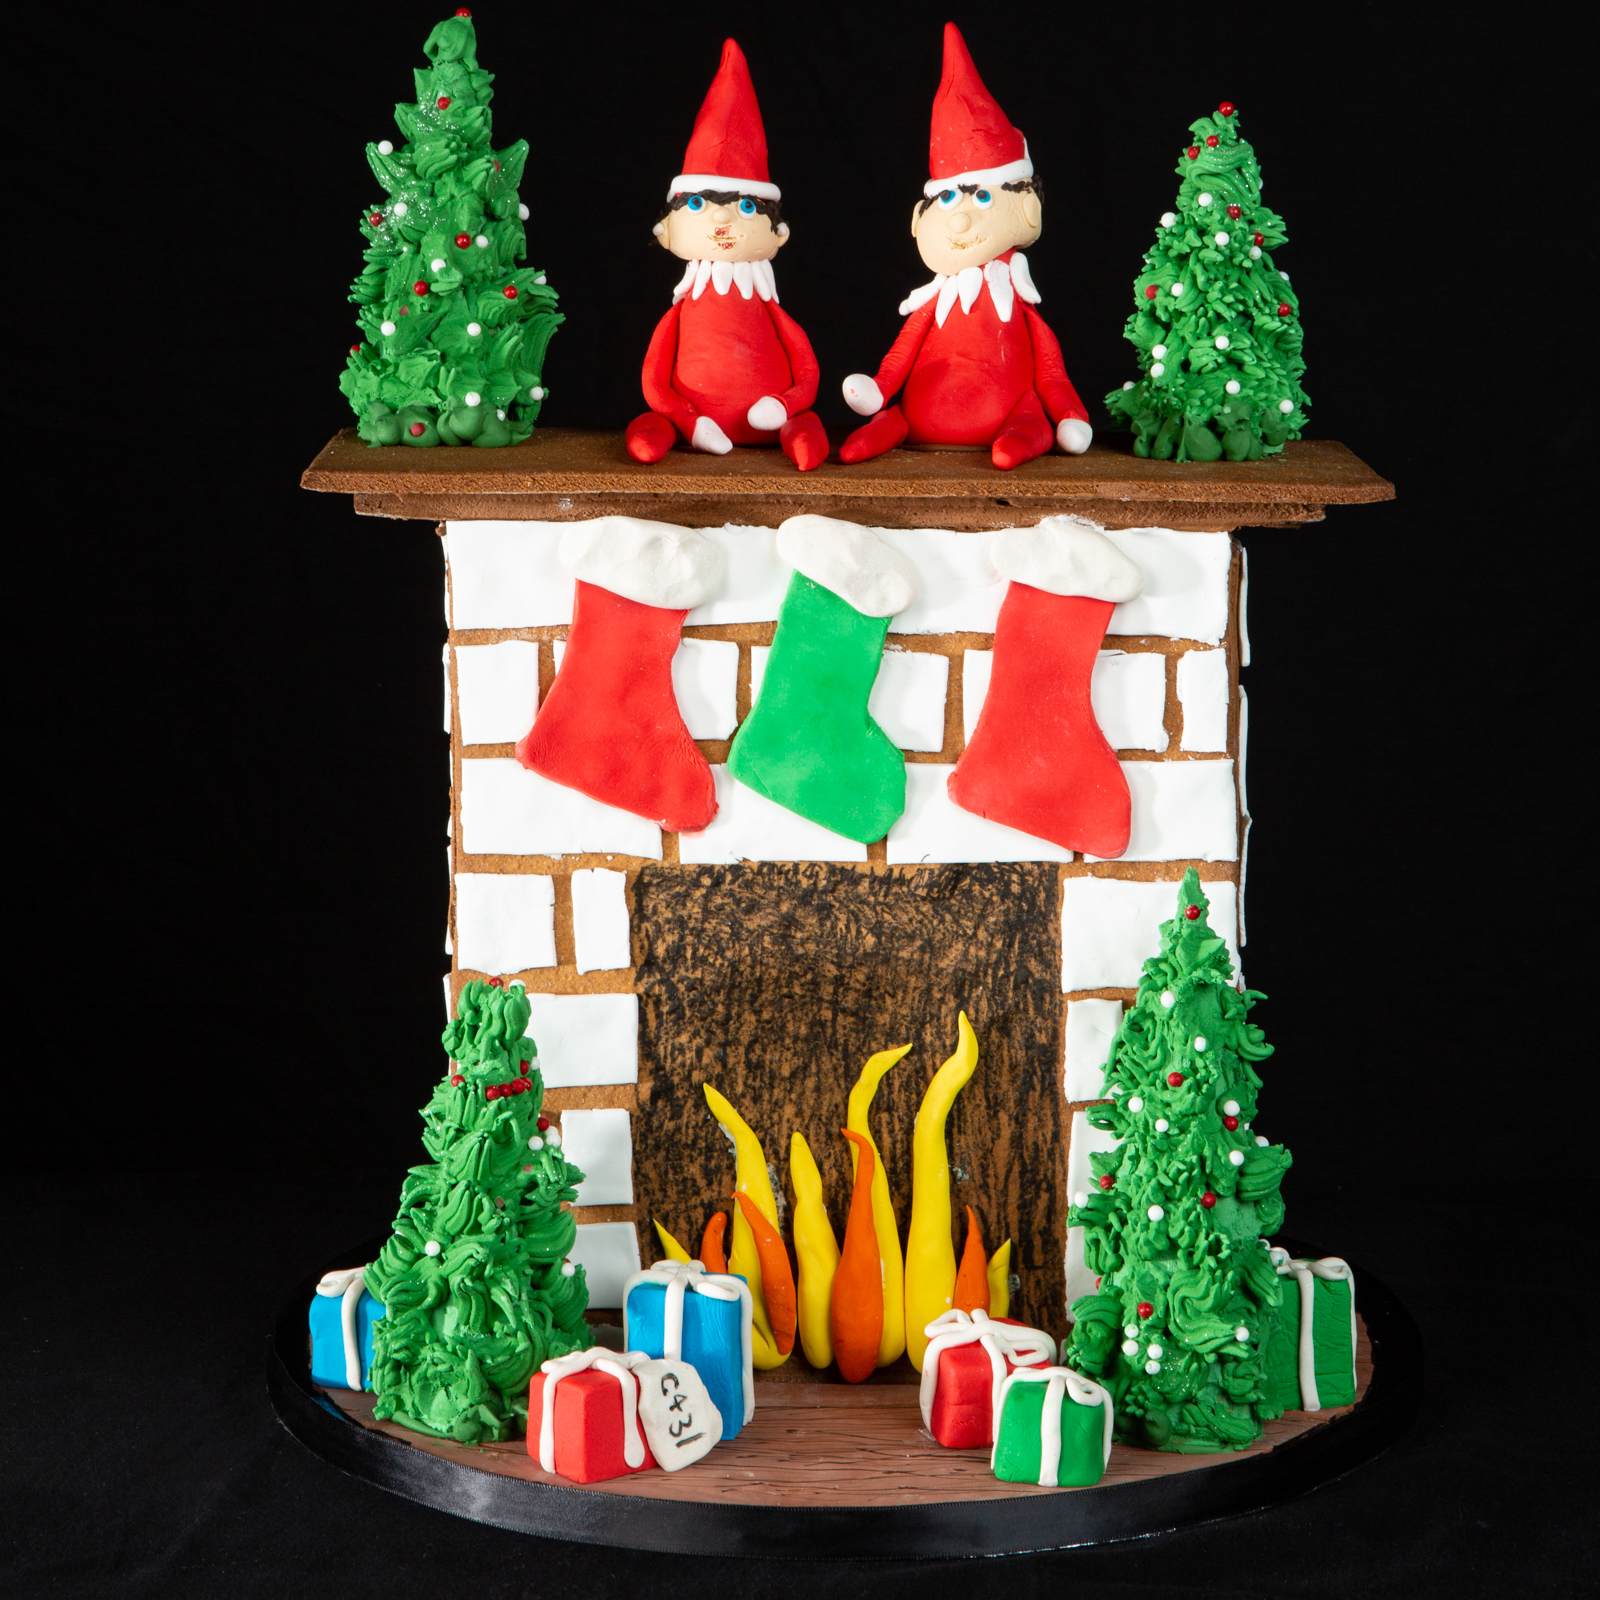 Elf on the shelf National Gingerbread House Competition entry